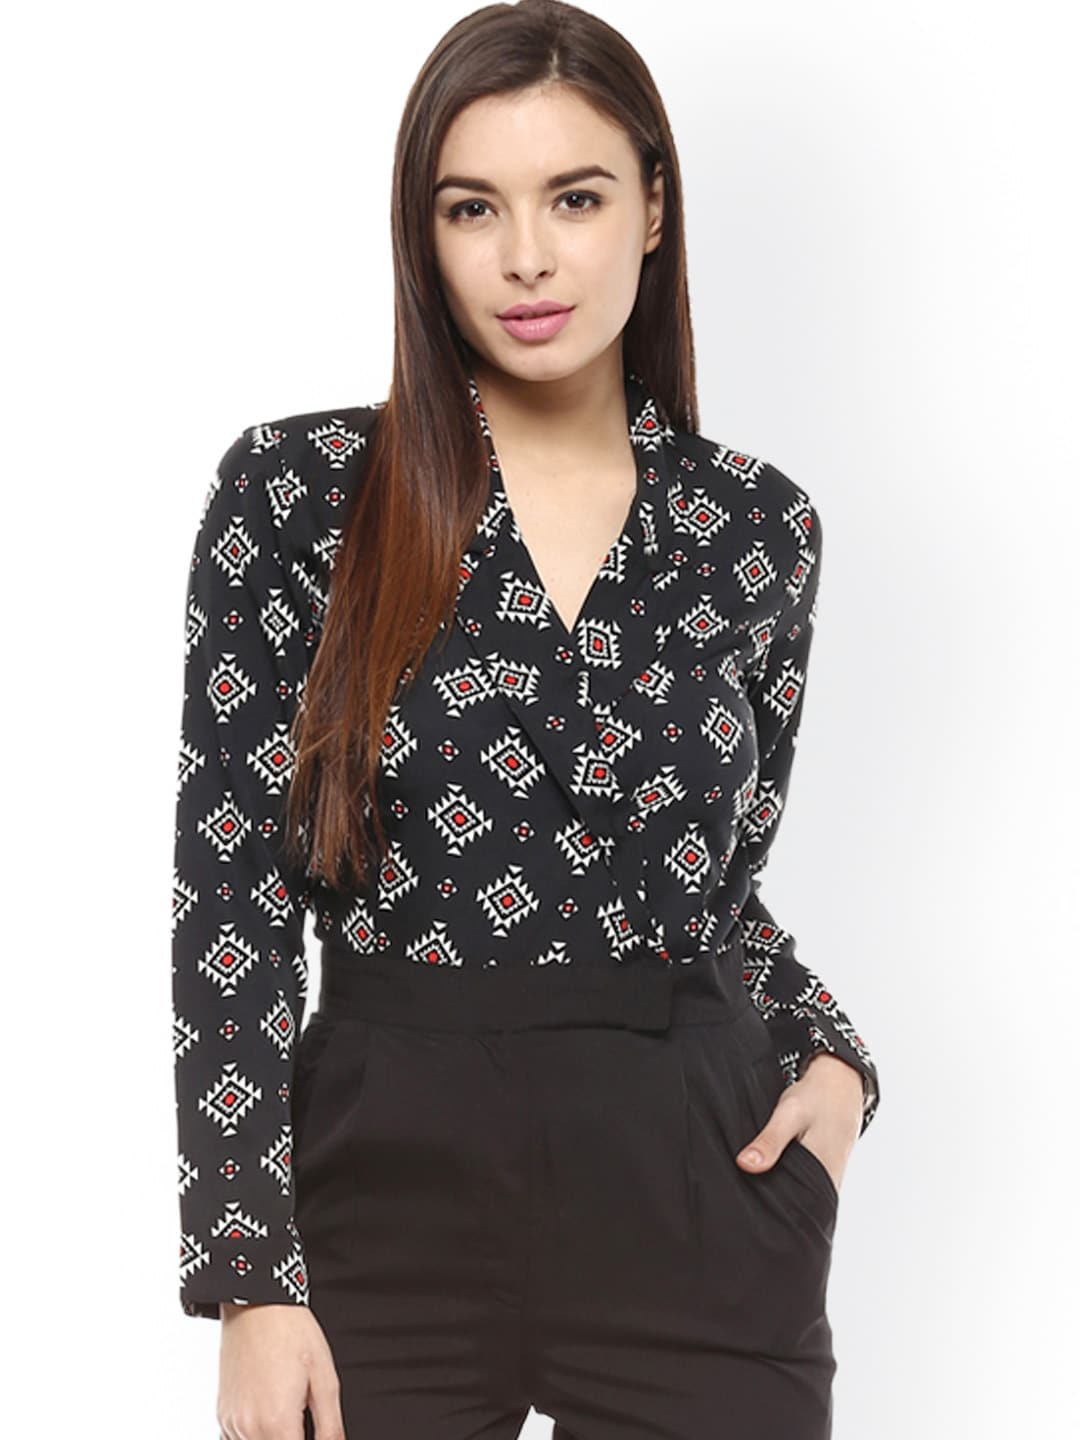 a425f321f10 Magnetic designs mdrom507 Black Printed Jumpsuit - Best Price in ...